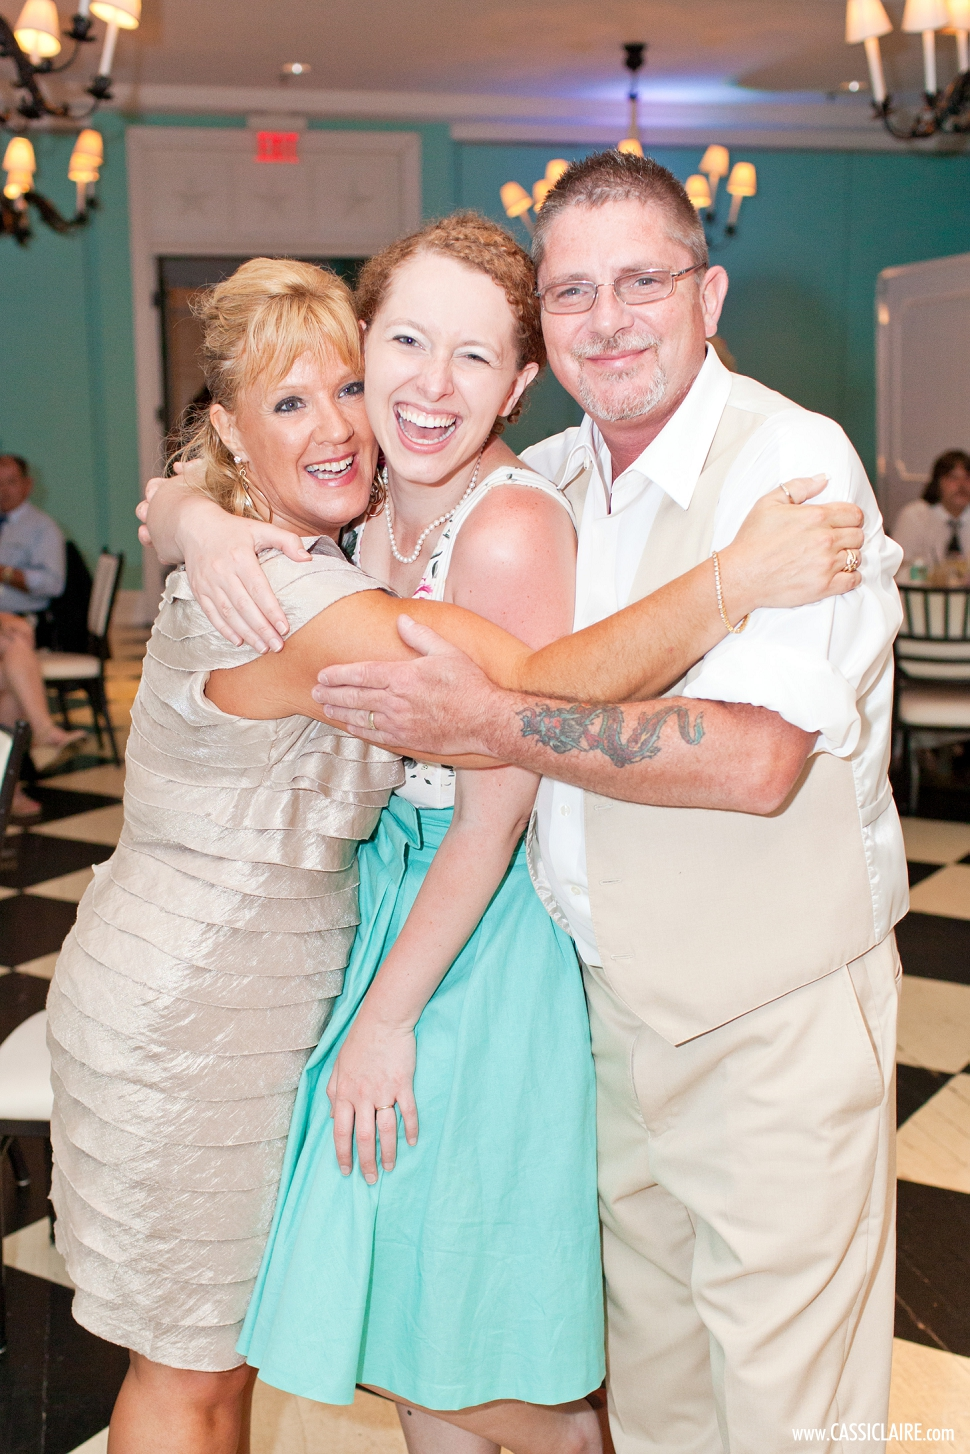 Cape-May-Congress-Hall-Wedding_72.jpg